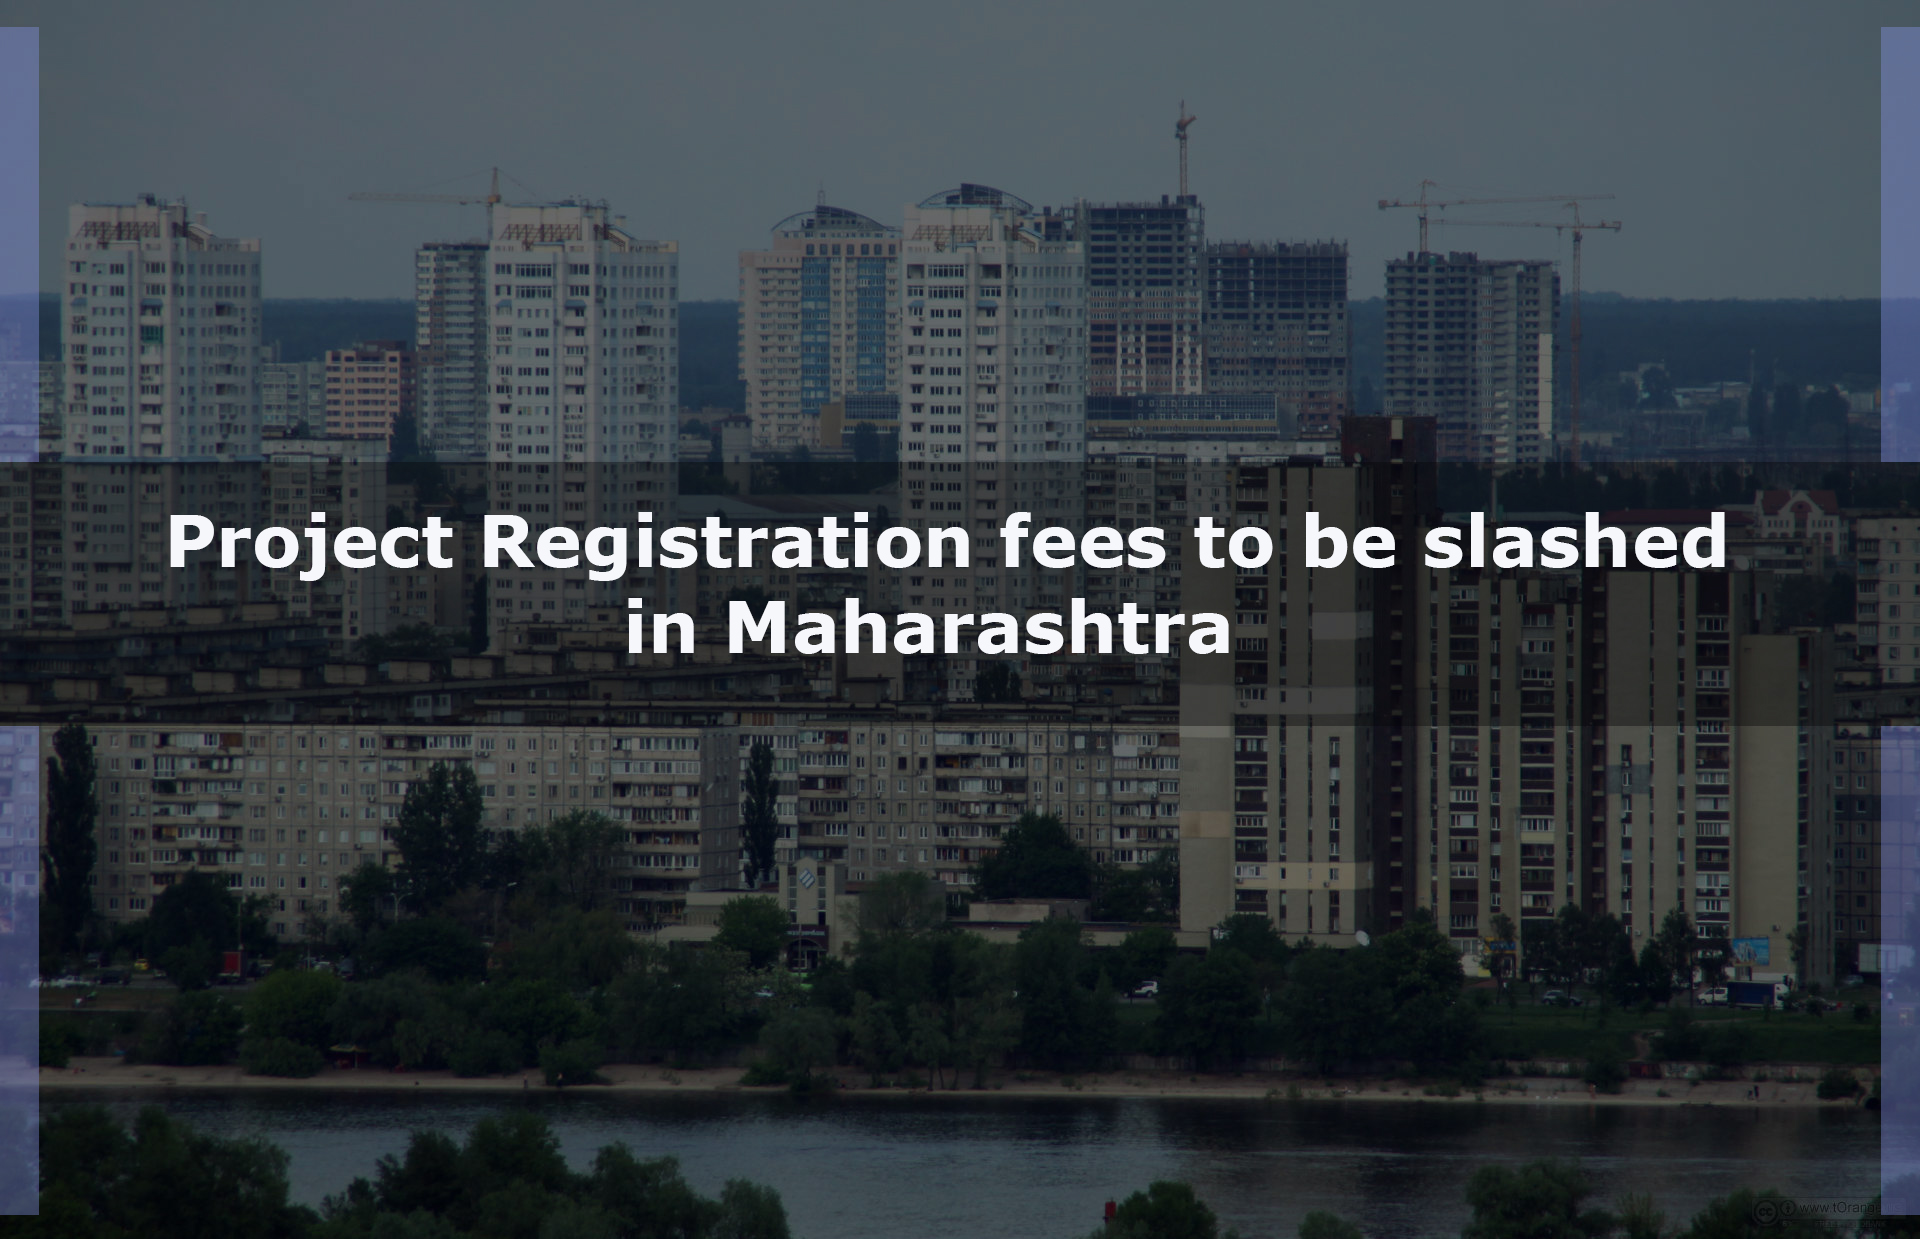 Project Registration fees to be slashed in Maharashtra